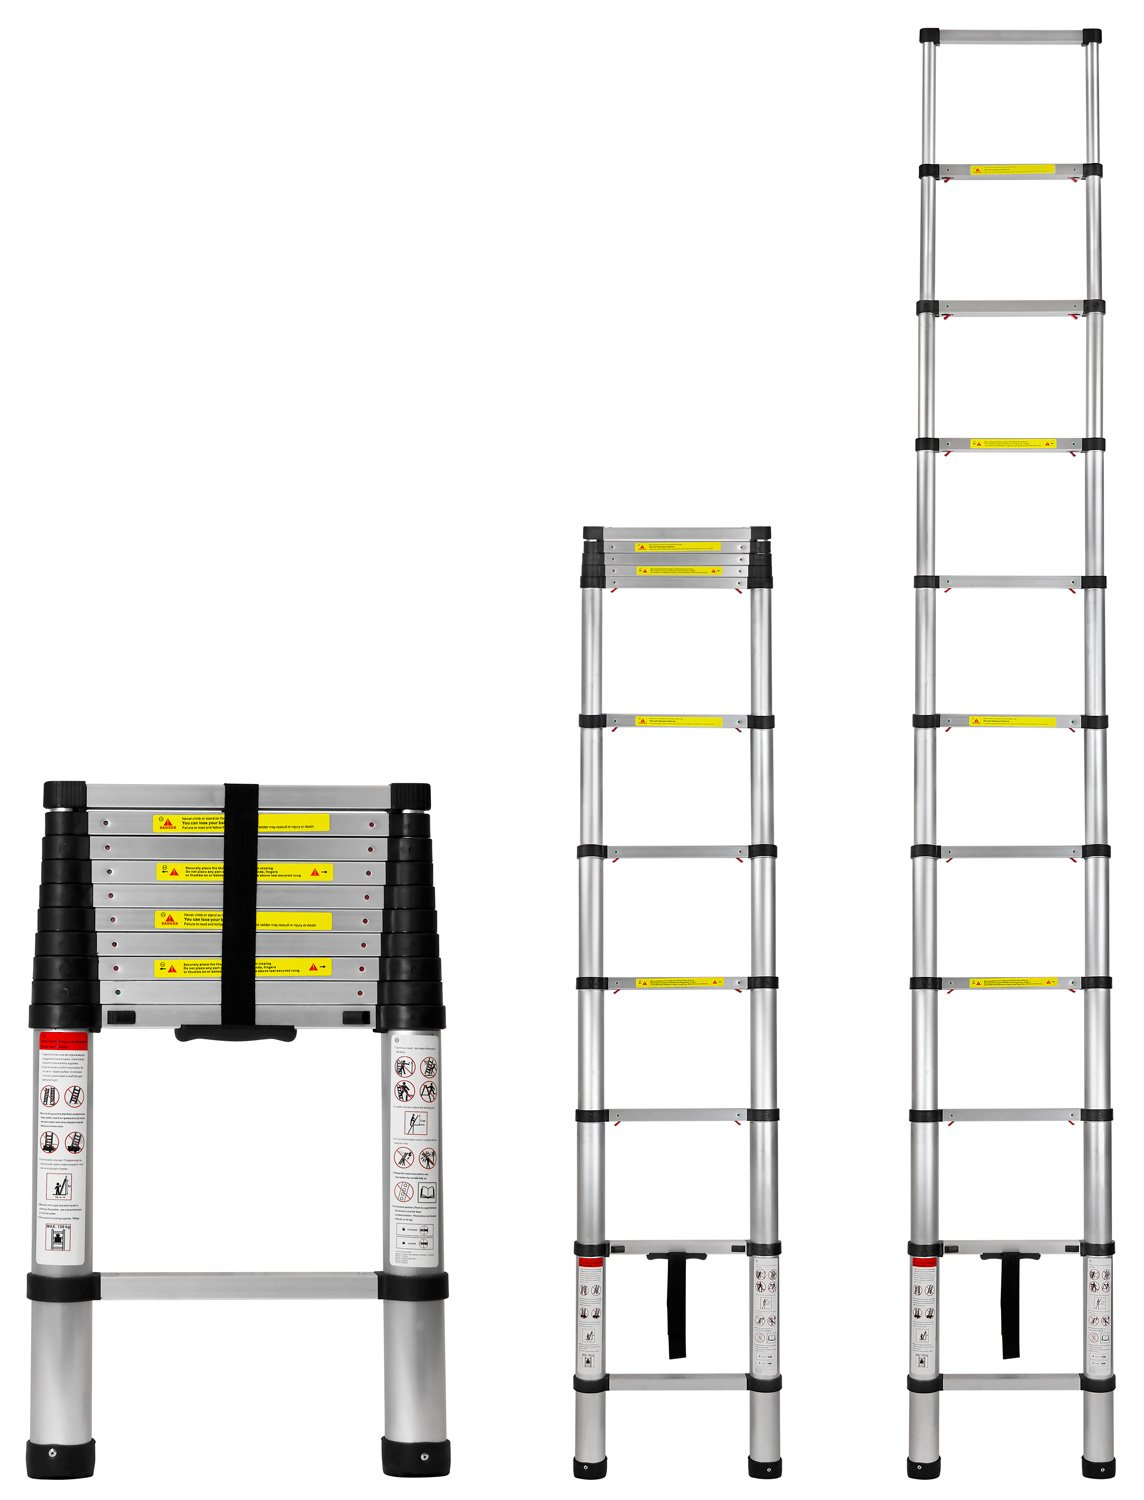 Work-It! Telescoping Ladder 10.5 Ft - Aluminum Extension Ladder with Soft Close Spring Function, EN131 Certified 330 lbs Capacity by Work-It! (Image #1)